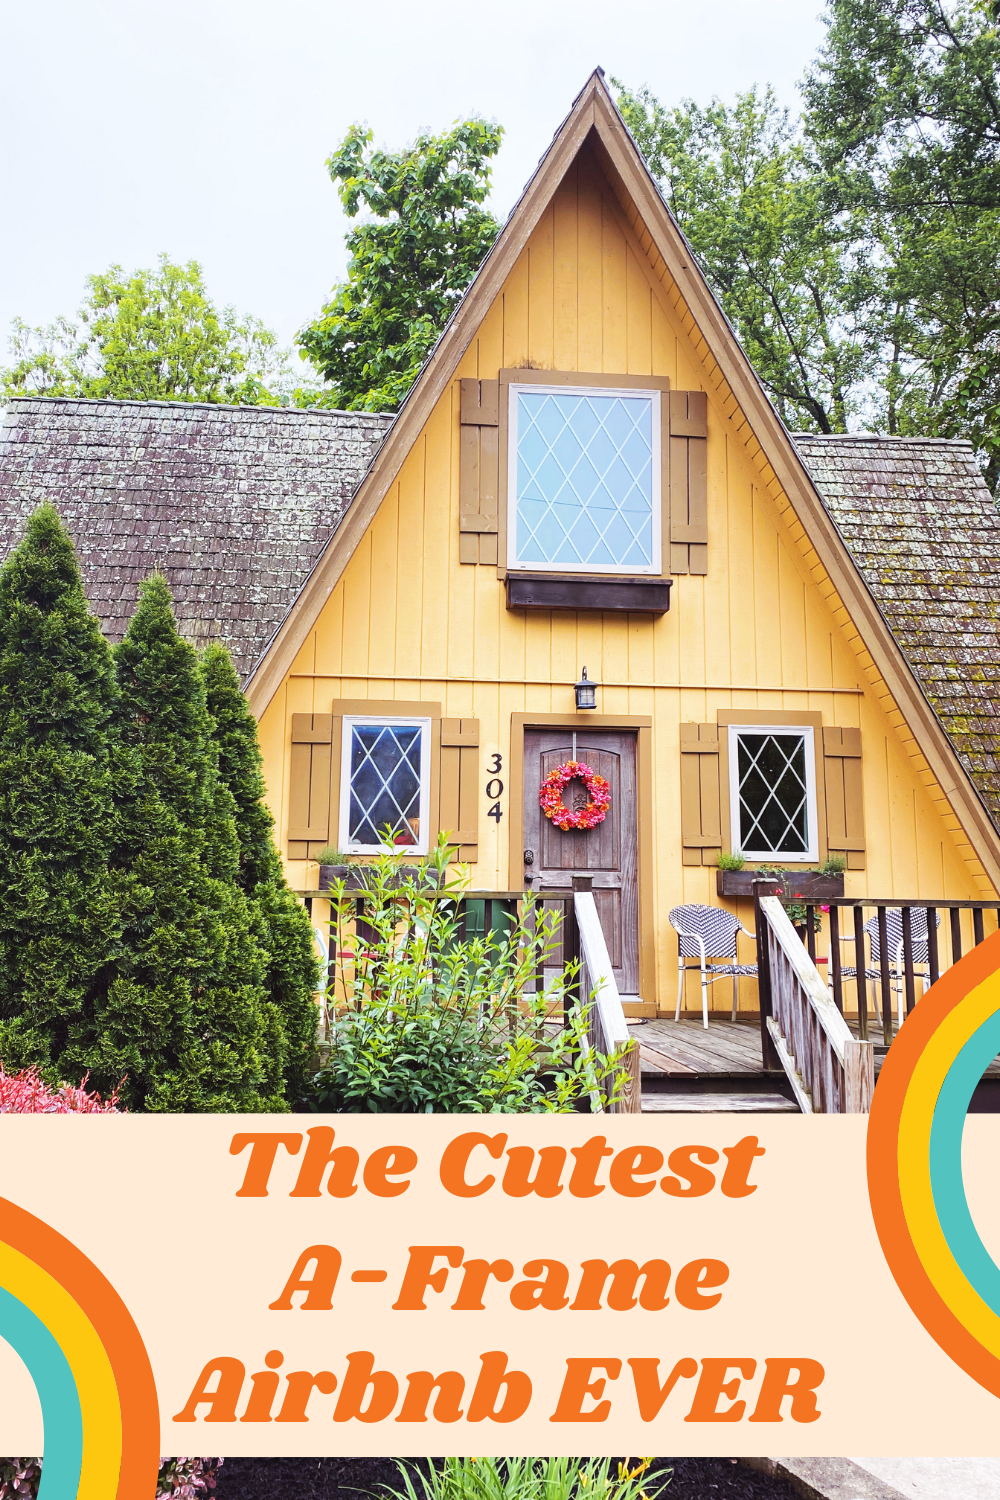 Cutest A-Frame Airbnb M.Reed Studio M x Reed Studio Branding and Website Design St. Charles MO Meghan Reed